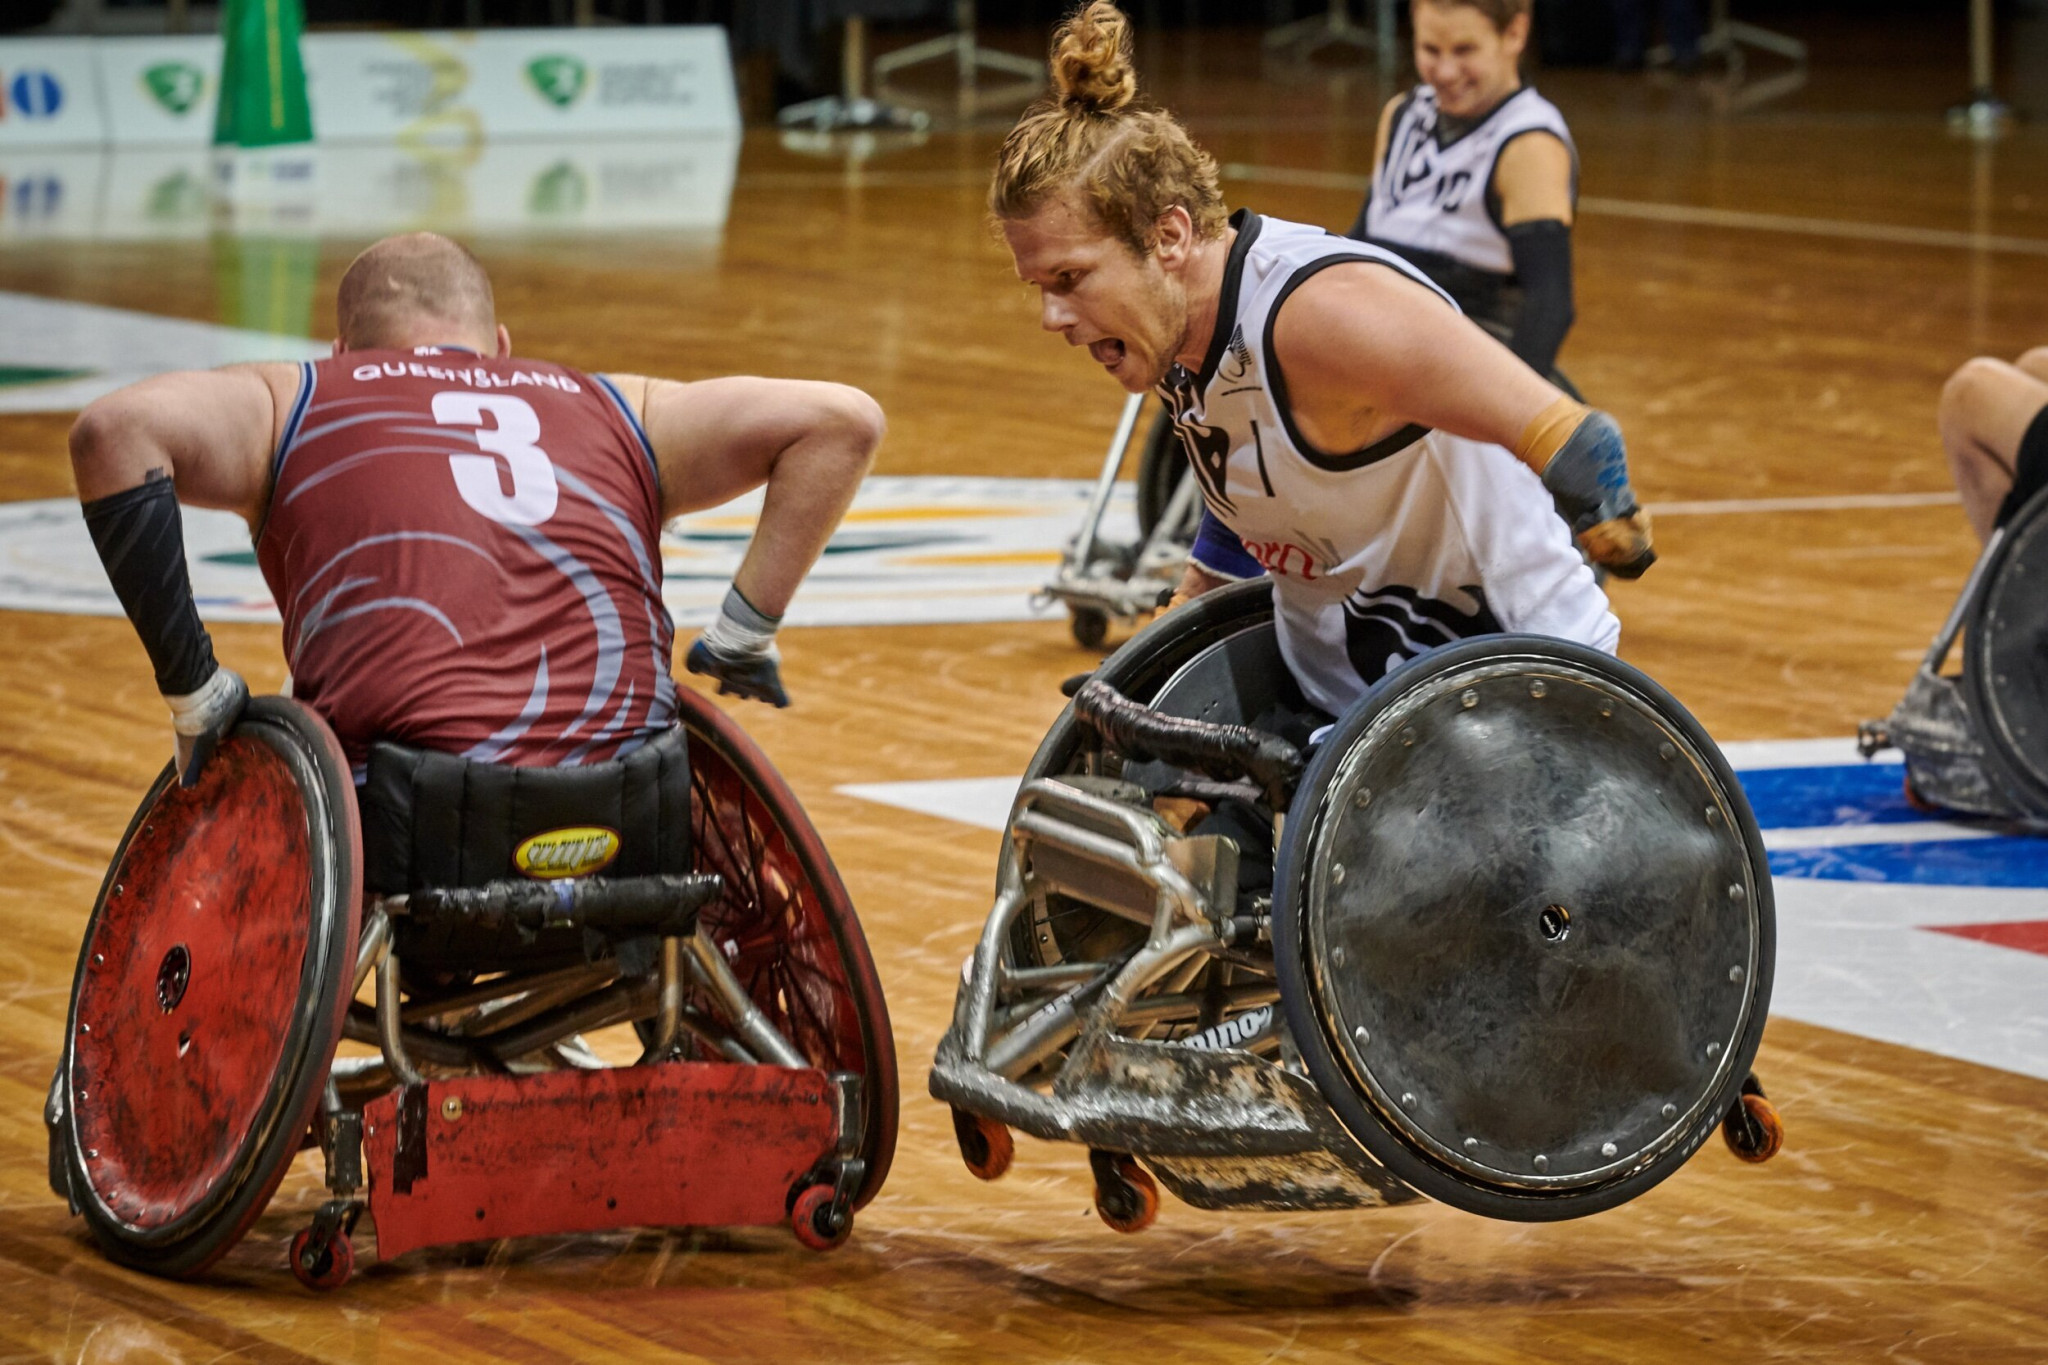 Wheelchair Rugby Australia announces new player recruitment plan